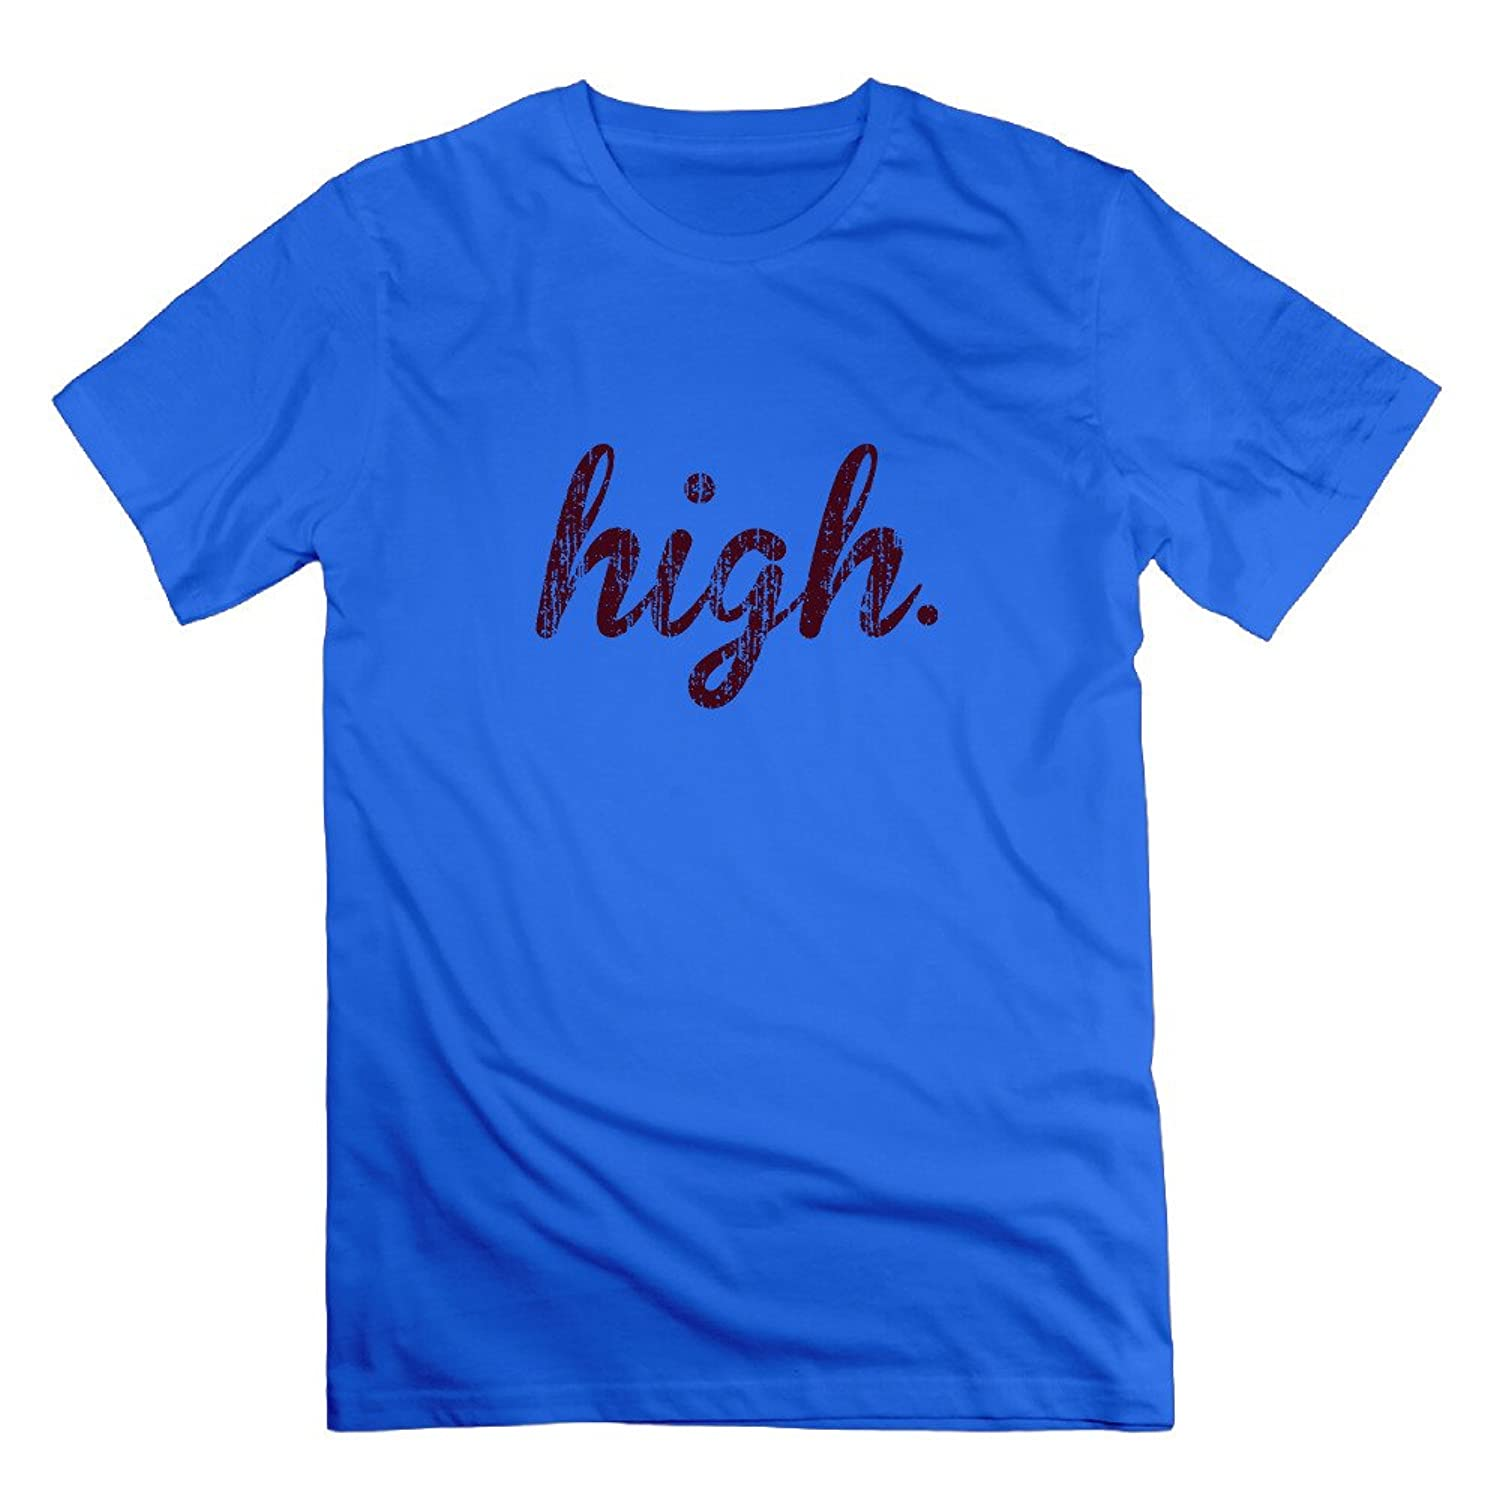 Men's High Hipster Tees Shirt.